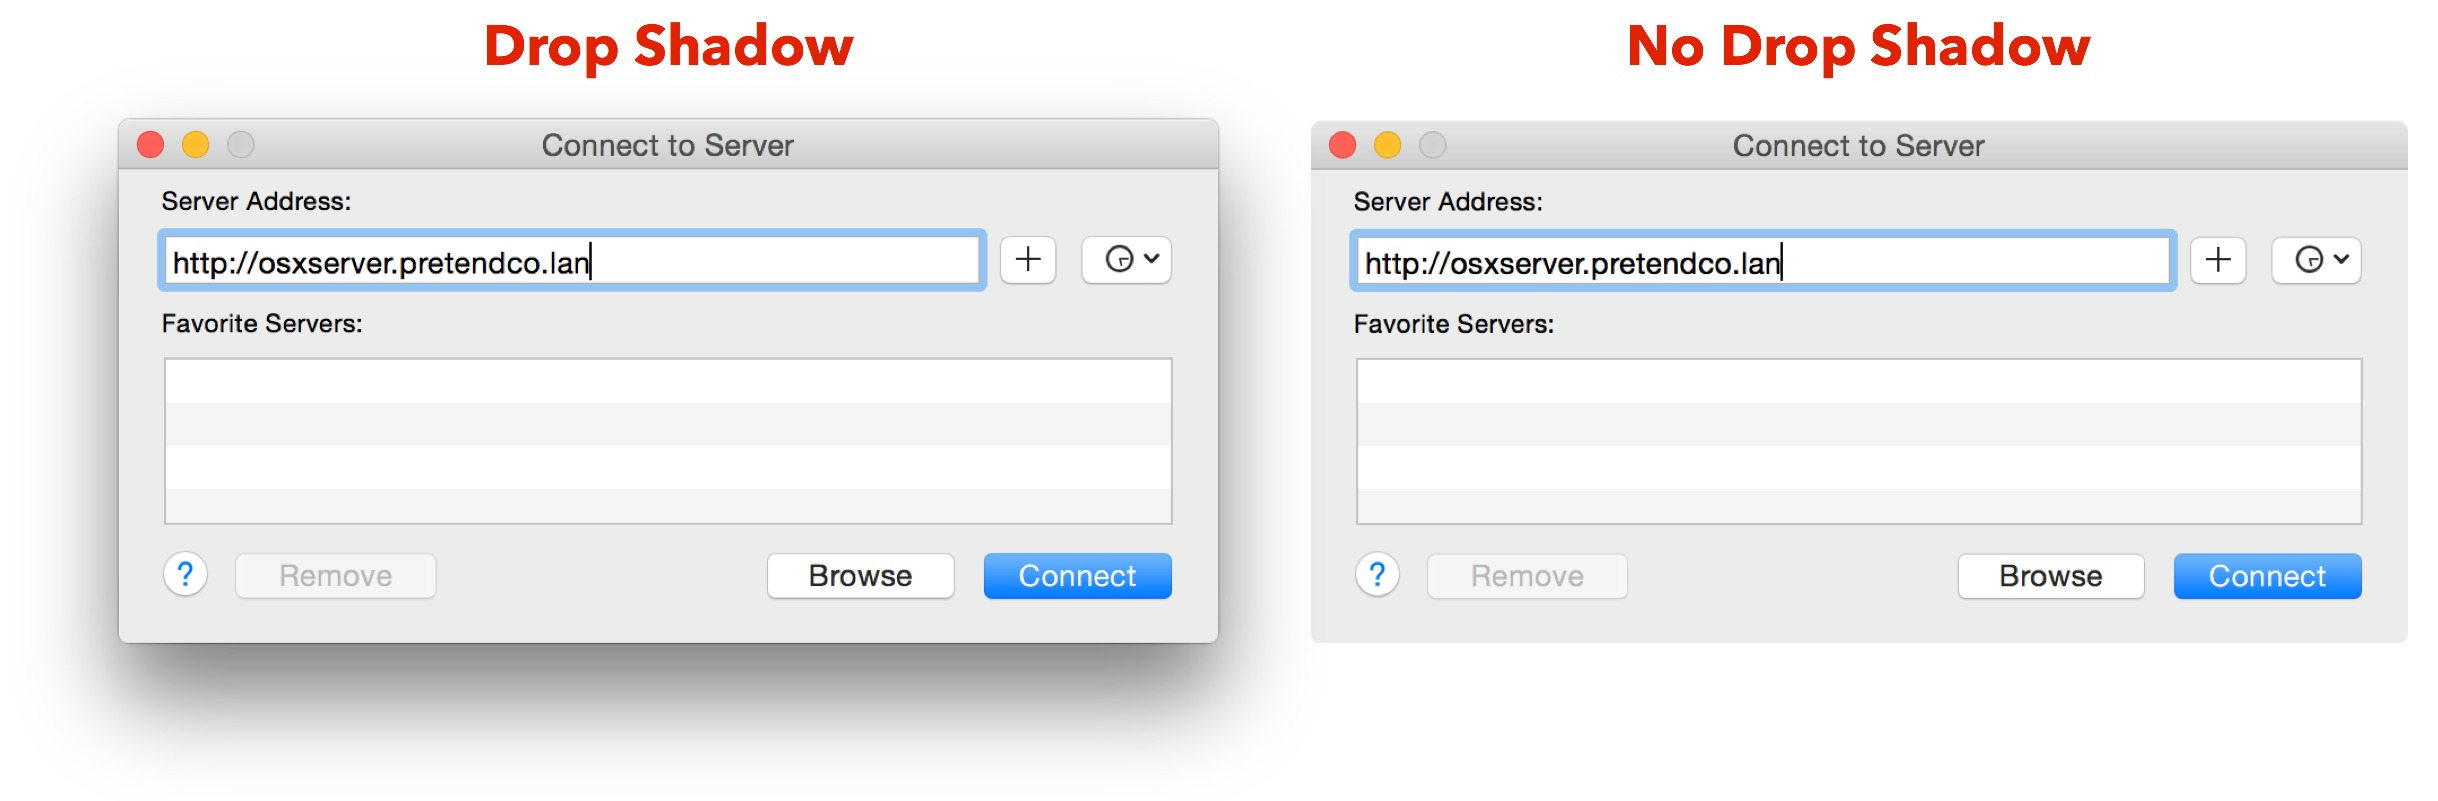 How to Eliminate Drop Shadows in OS X Screenshots - TidBITS